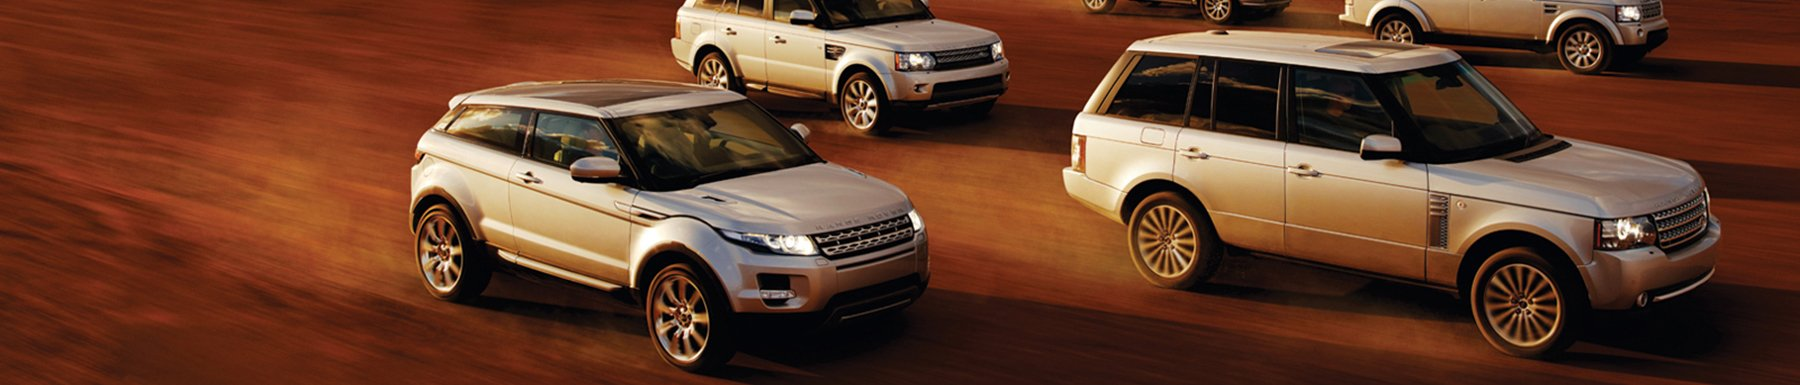 pre-owned Land Rover models